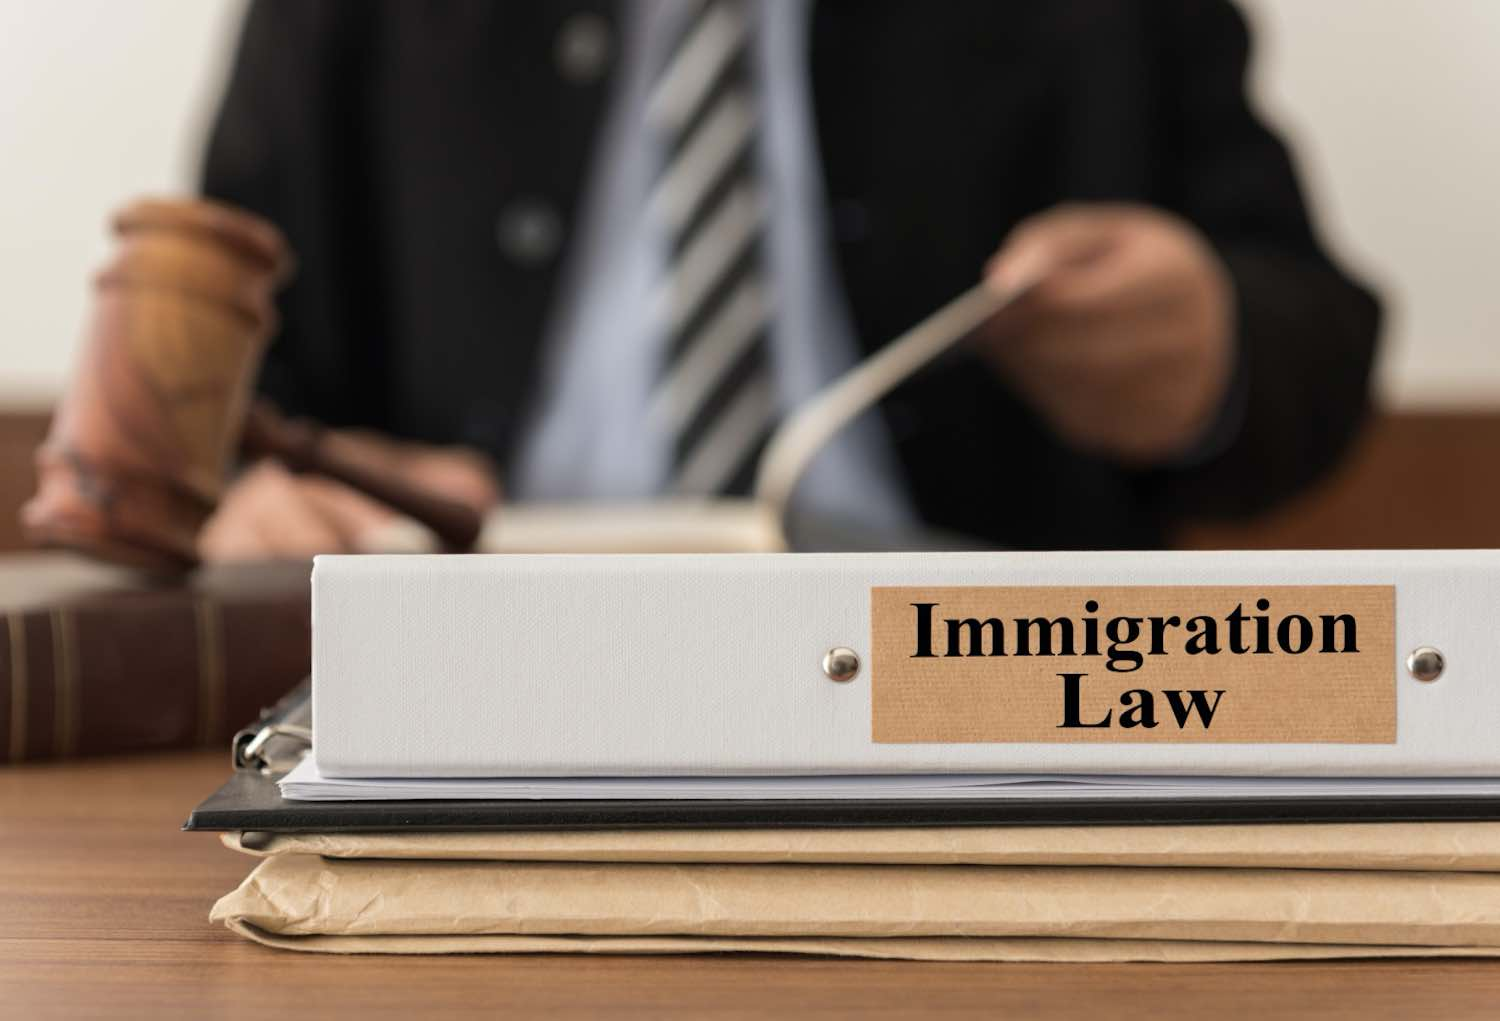 How to Immigrate to the US: The Big Dreamer's Guide